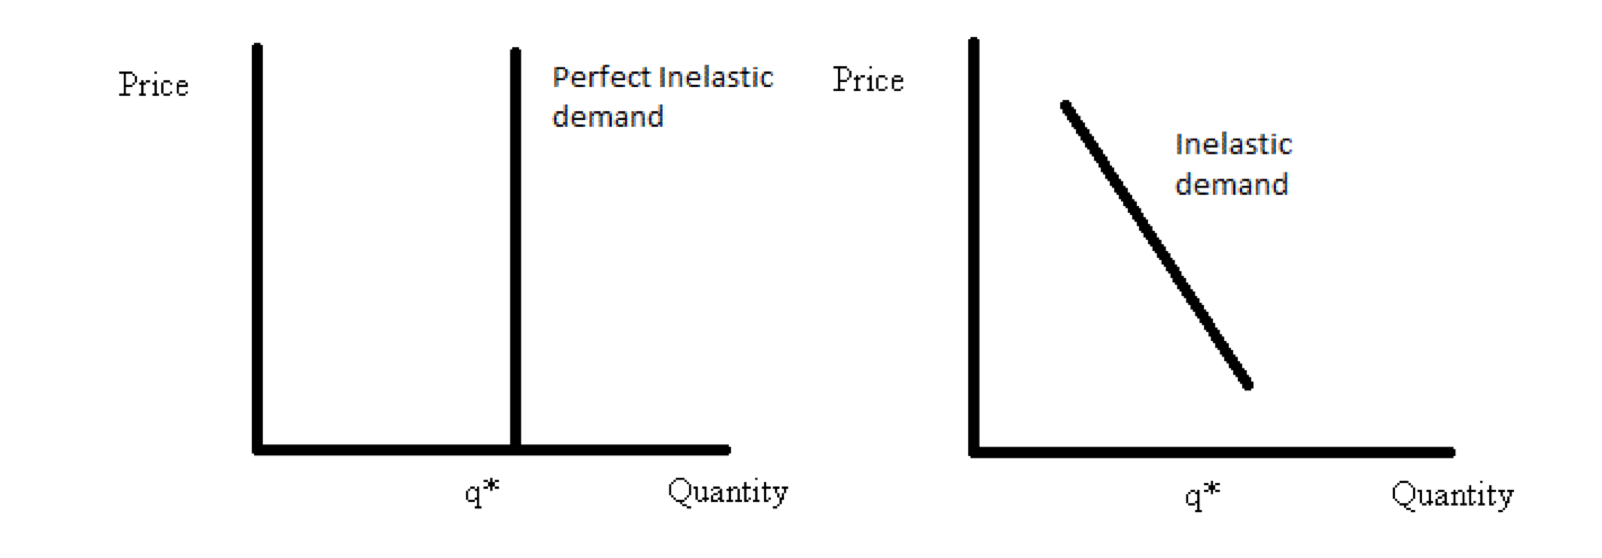 Demand Elasticity and inelastic demand